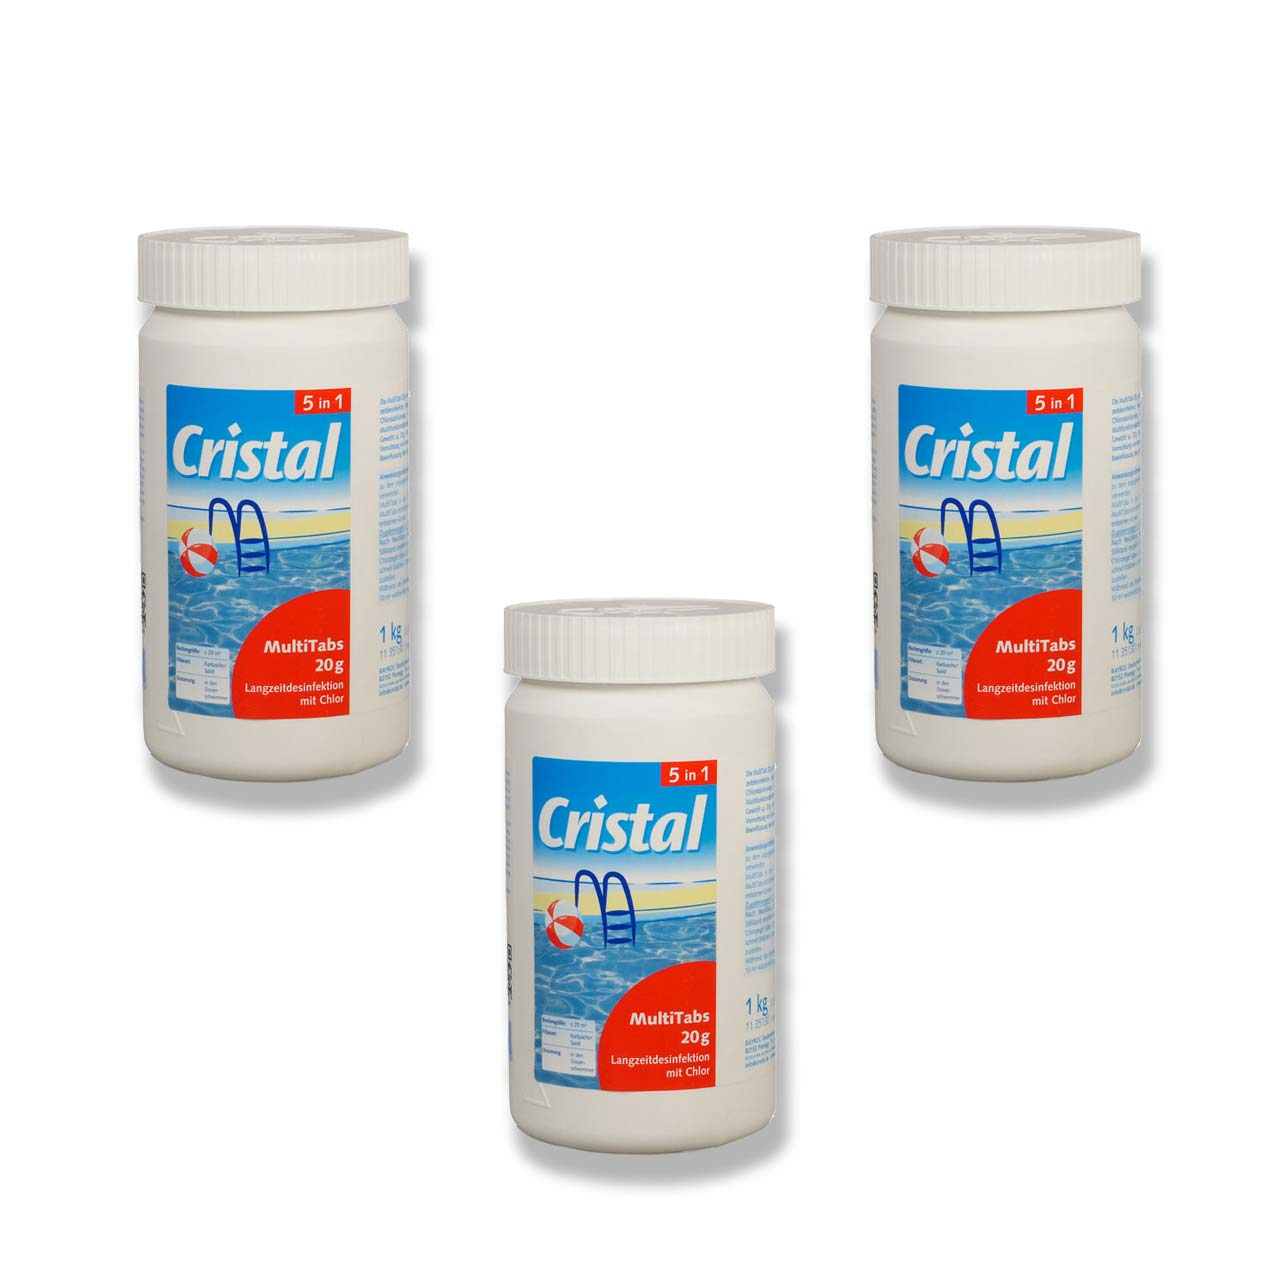 Cristal MultiTabs 5-in-1 á 20g (1 kg) 3er Set